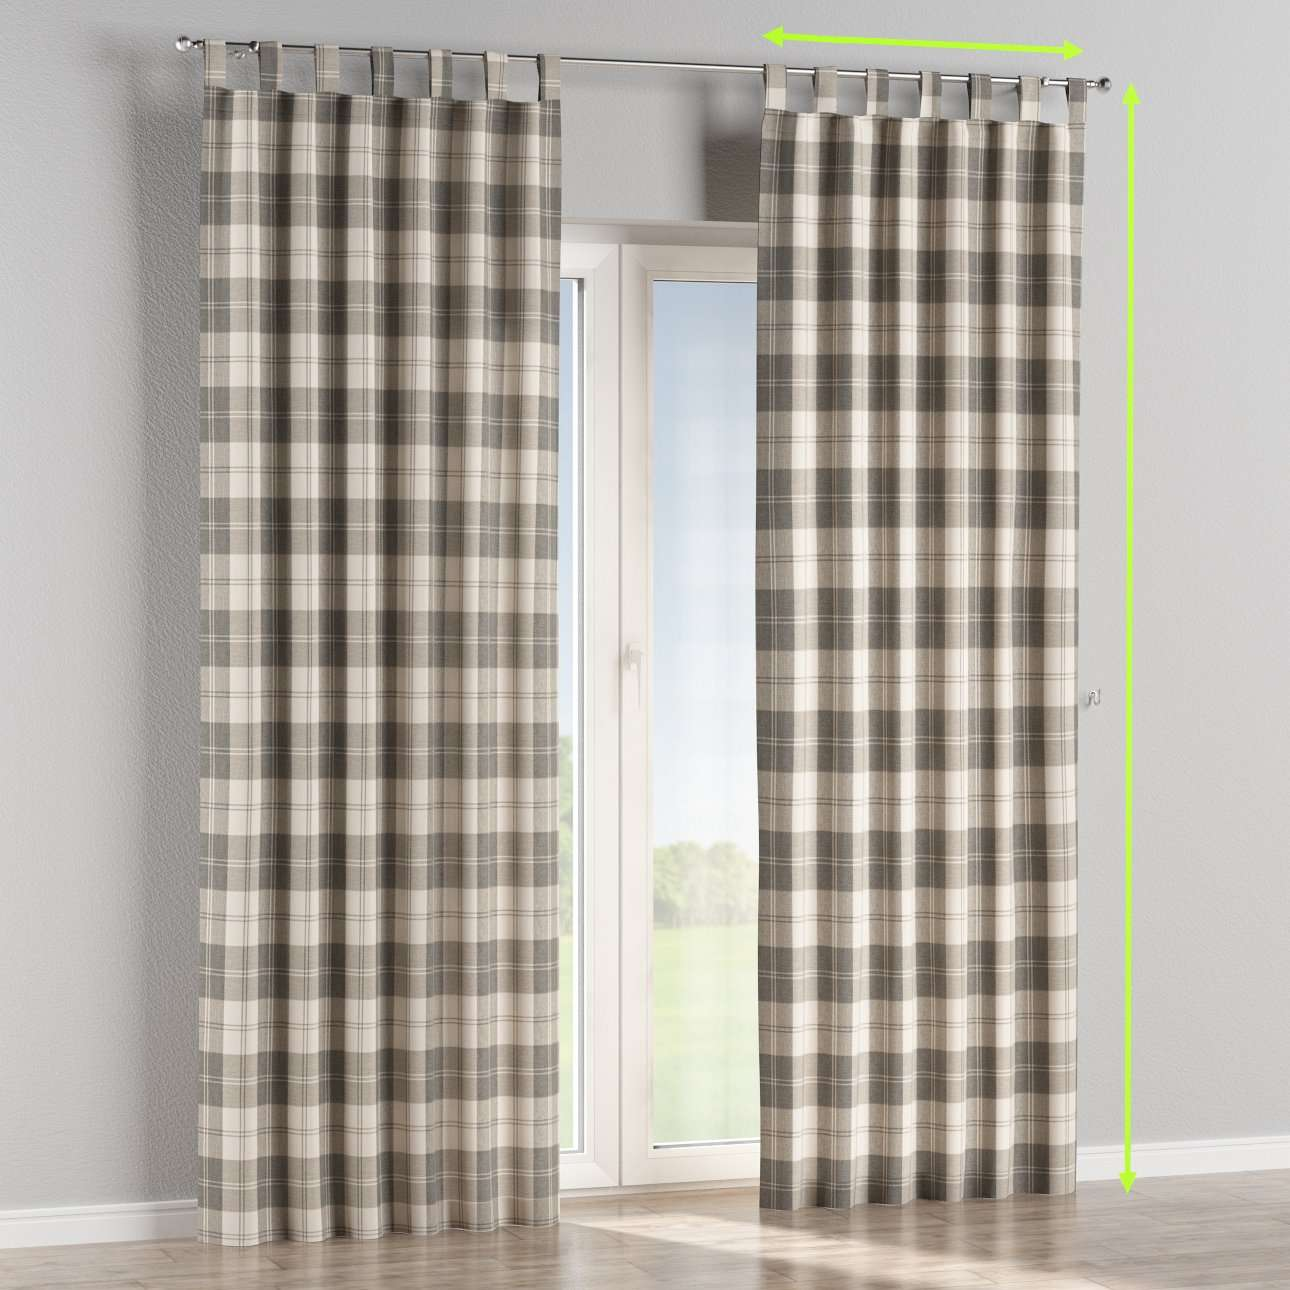 Tab top lined curtains in collection Edinburgh, fabric: 115-79